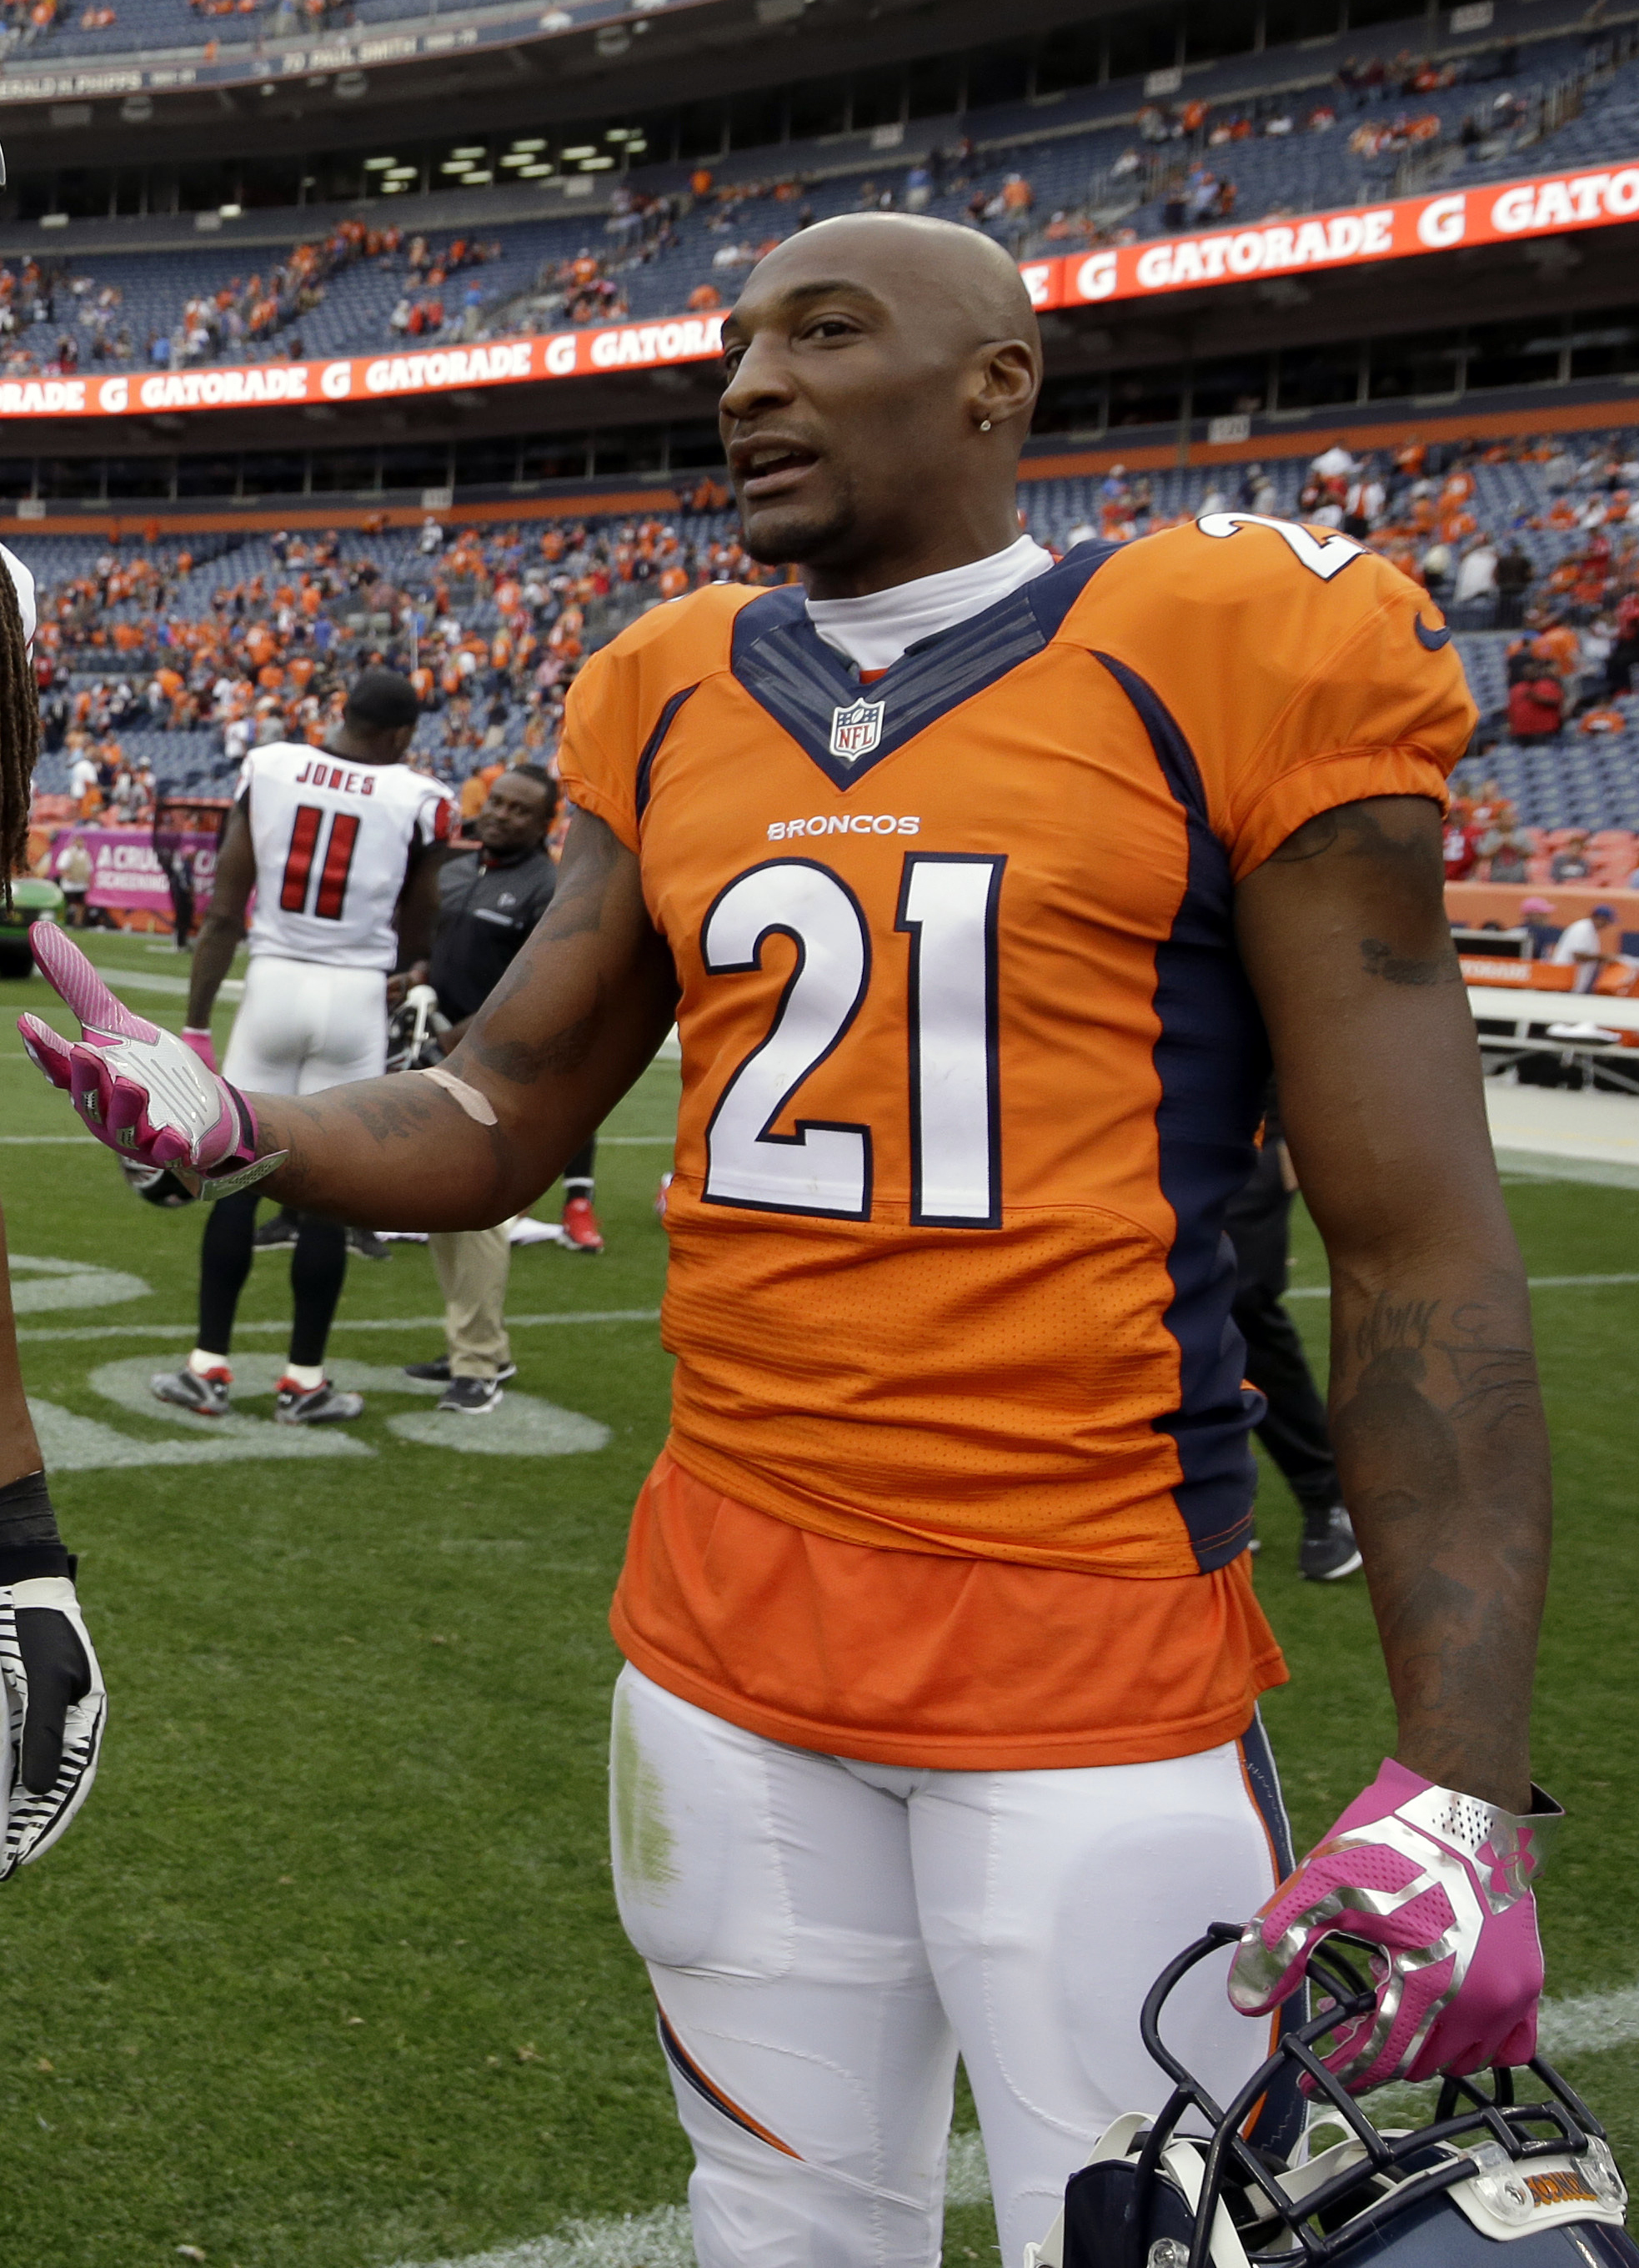 FILE - In this Oct. 9, 2016, file photo, Denver Broncos cornerback Aqib Talib gestures while talking on then sidelines after an NFL football game in Denver. The Broncos could be without Pro Bowl cornerback Aqib Talib for their Sunday night showdown with t